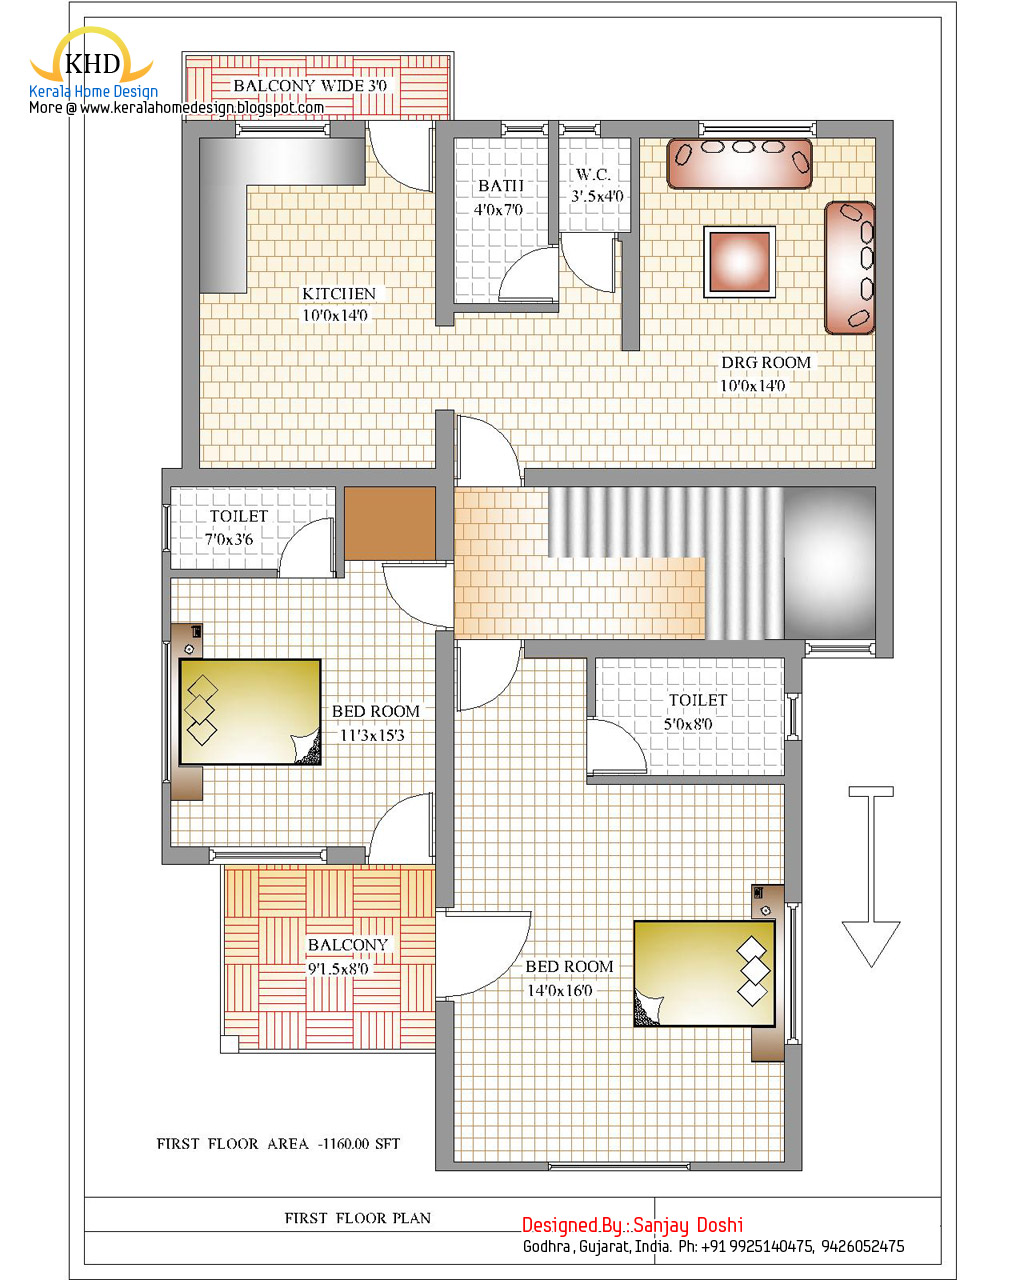 Duplex house plan and elevation 2310 sq ft indian for Building plans for duplex homes